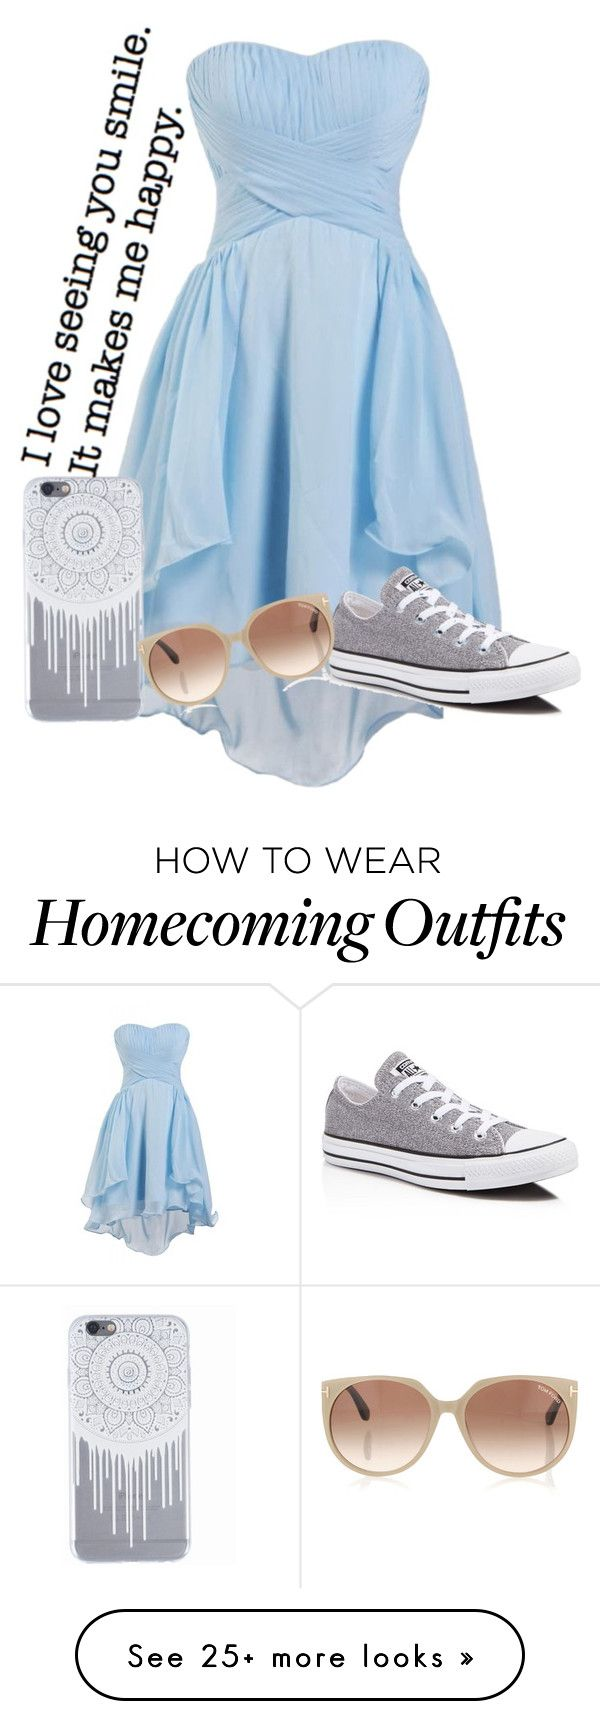 """""""christmas, amirite? .-."""" by kacicakez on Polyvore featuring Converse, Tom Ford and kacimarie"""